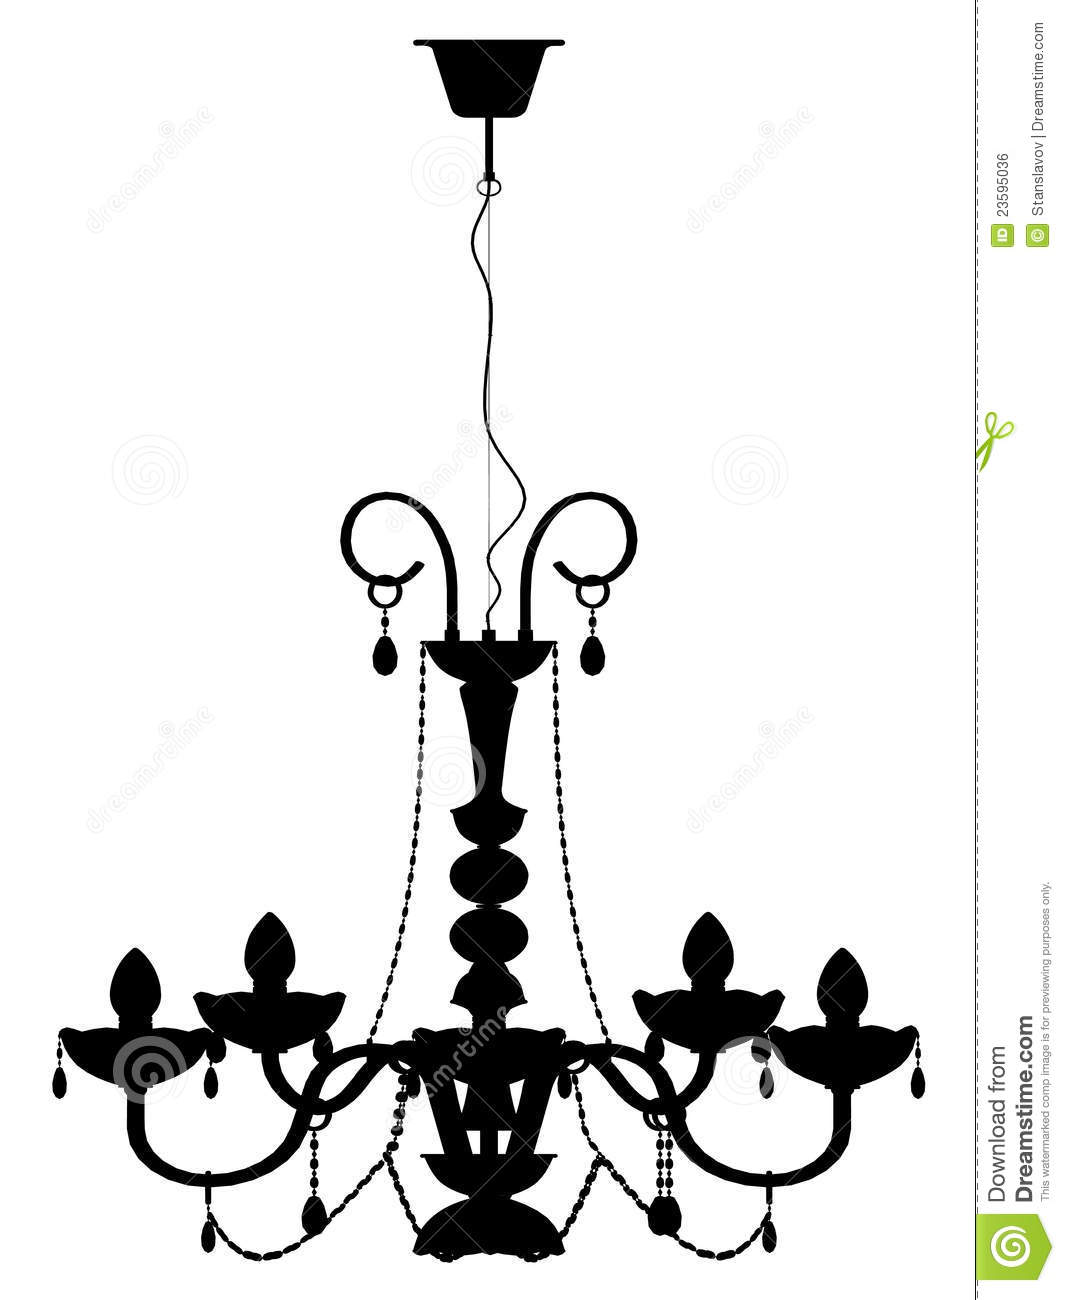 Chandelier Lamp Outline Silhouette Stock Illustration